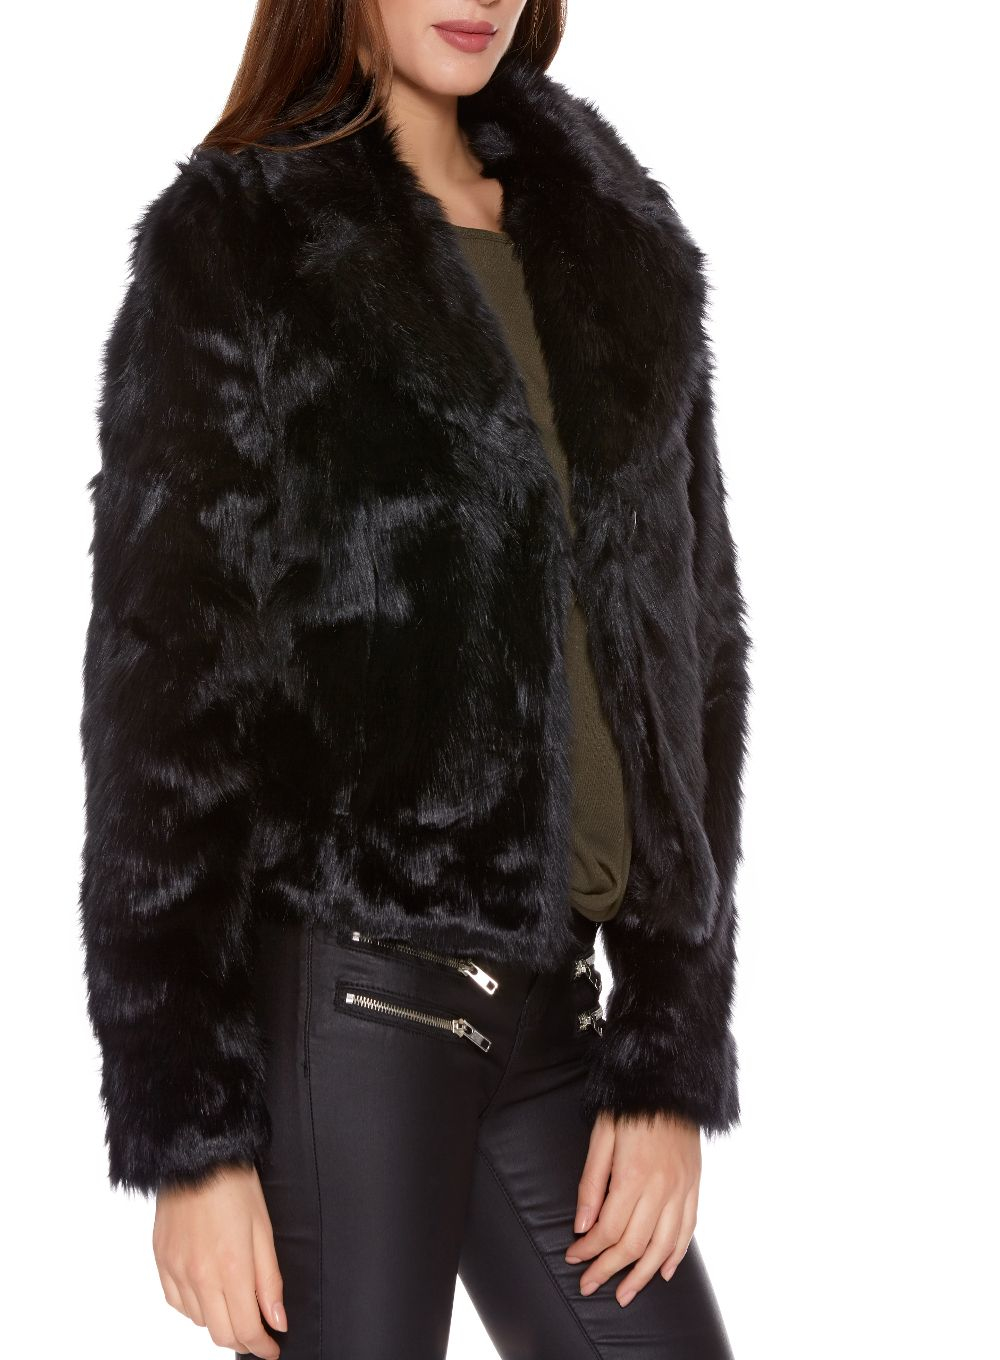 Free shipping BOTH ways on faux fur short jackets, from our vast selection of styles. Fast delivery, and 24/7/ real-person service with a smile. Click or call